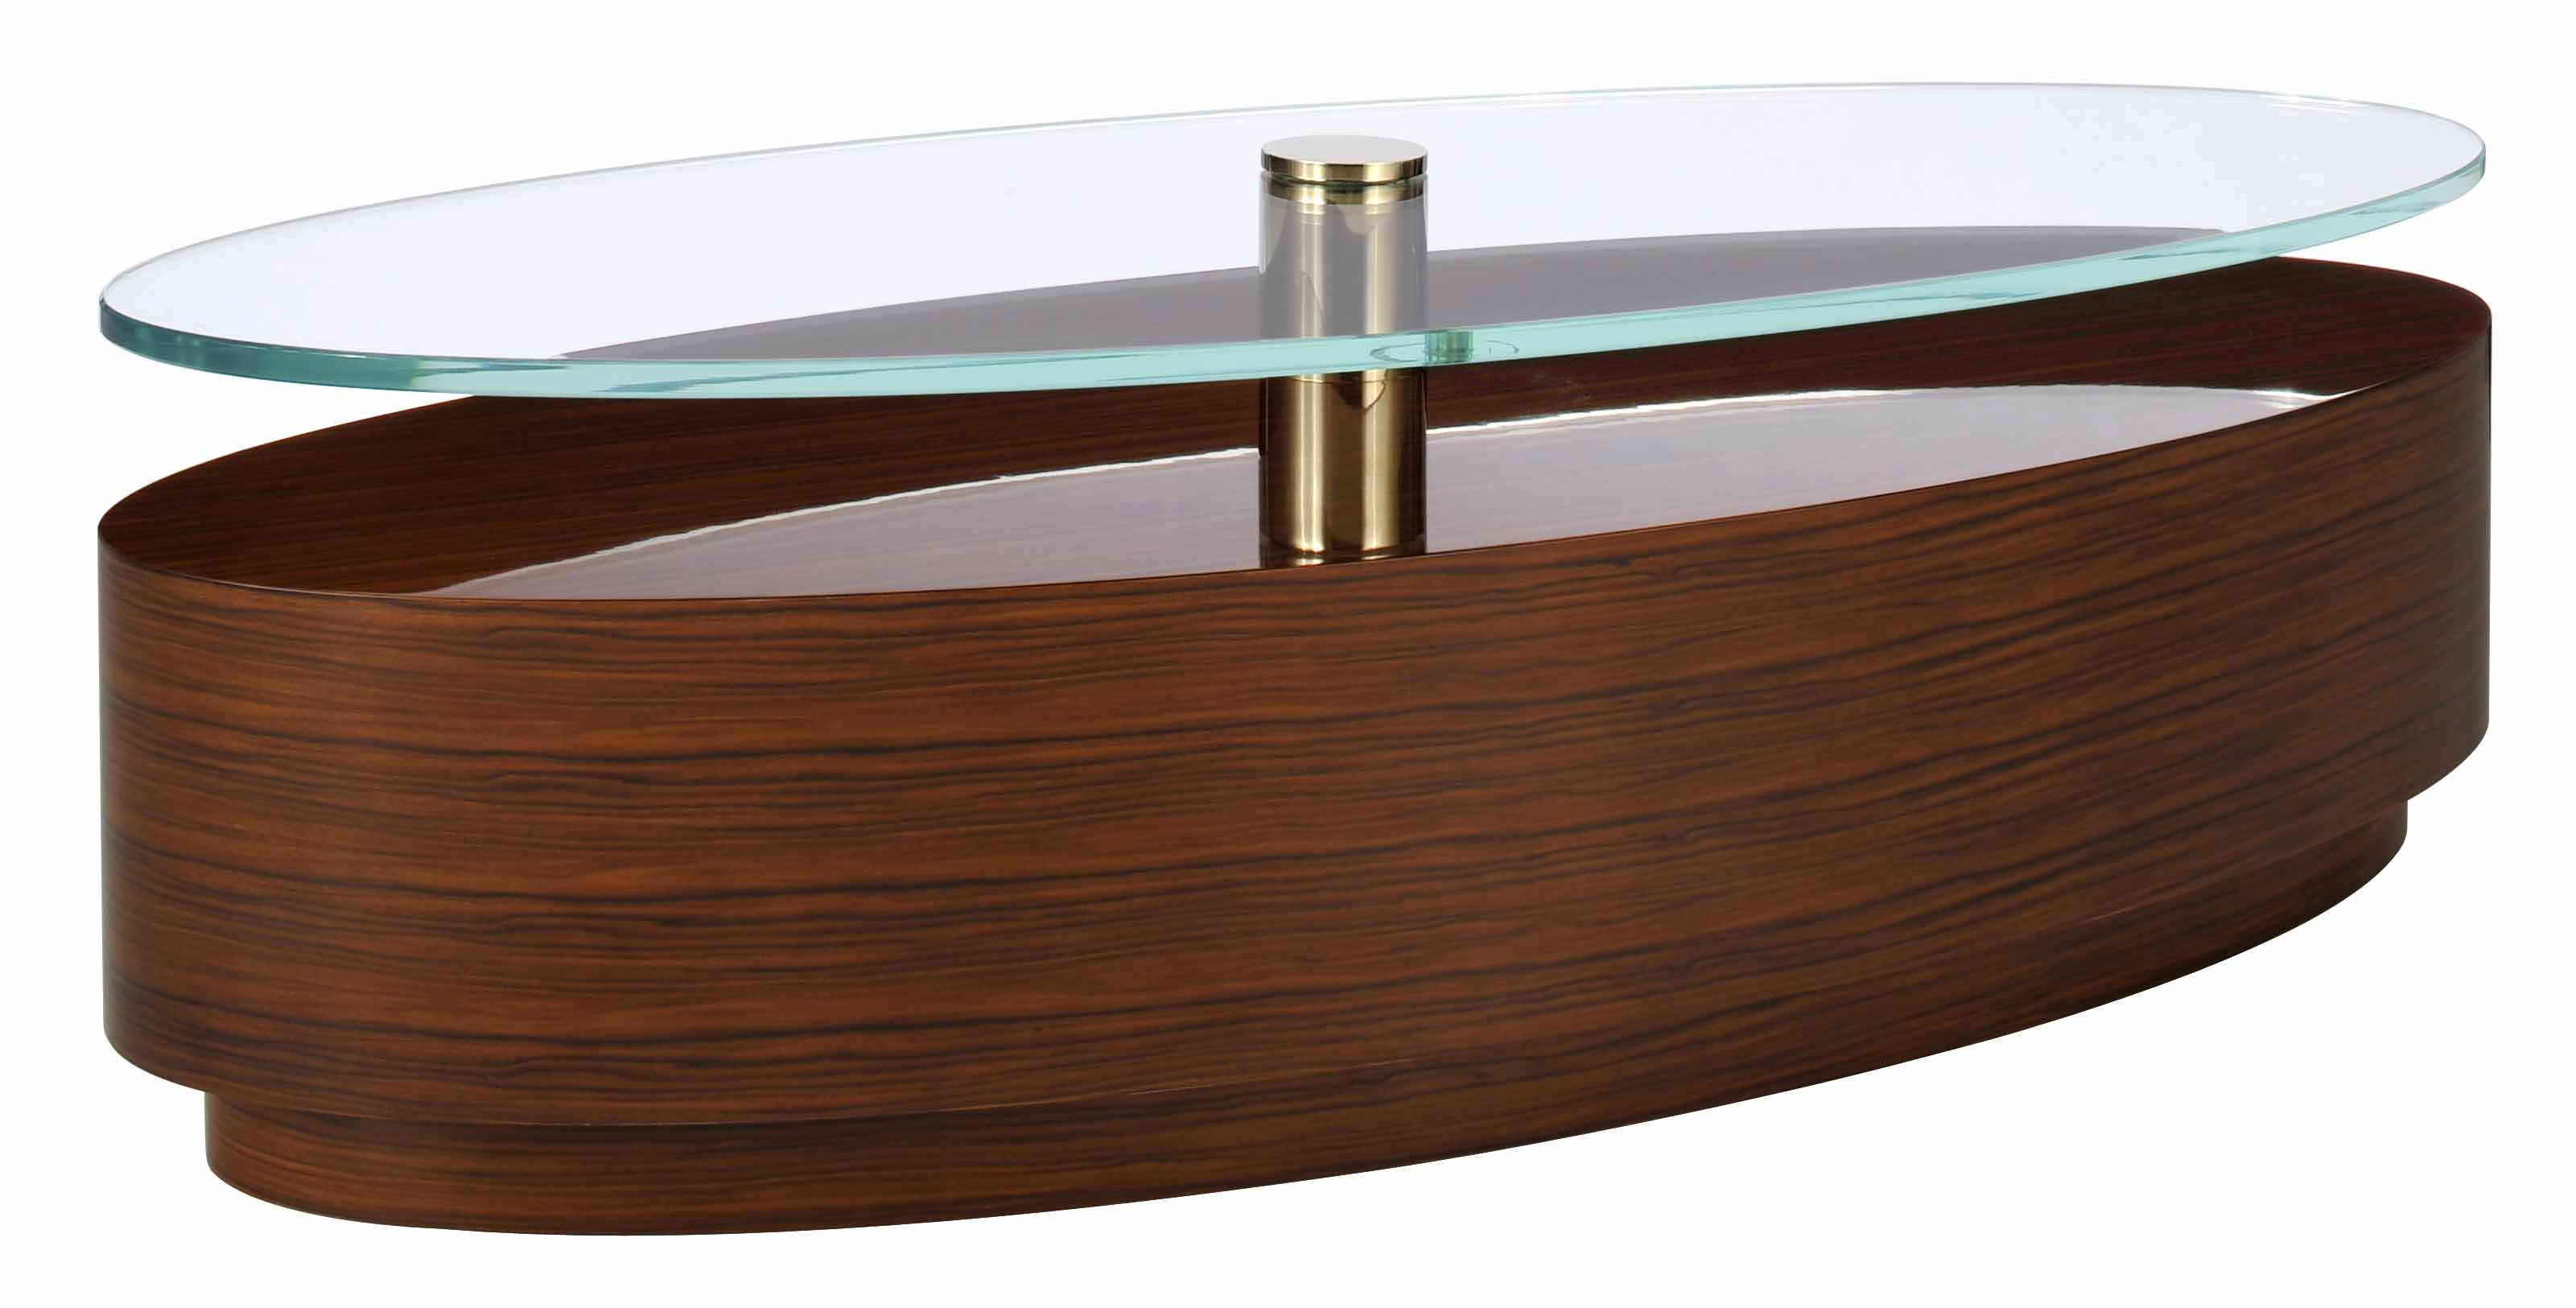 JD-13001B Cocktail table by Decca